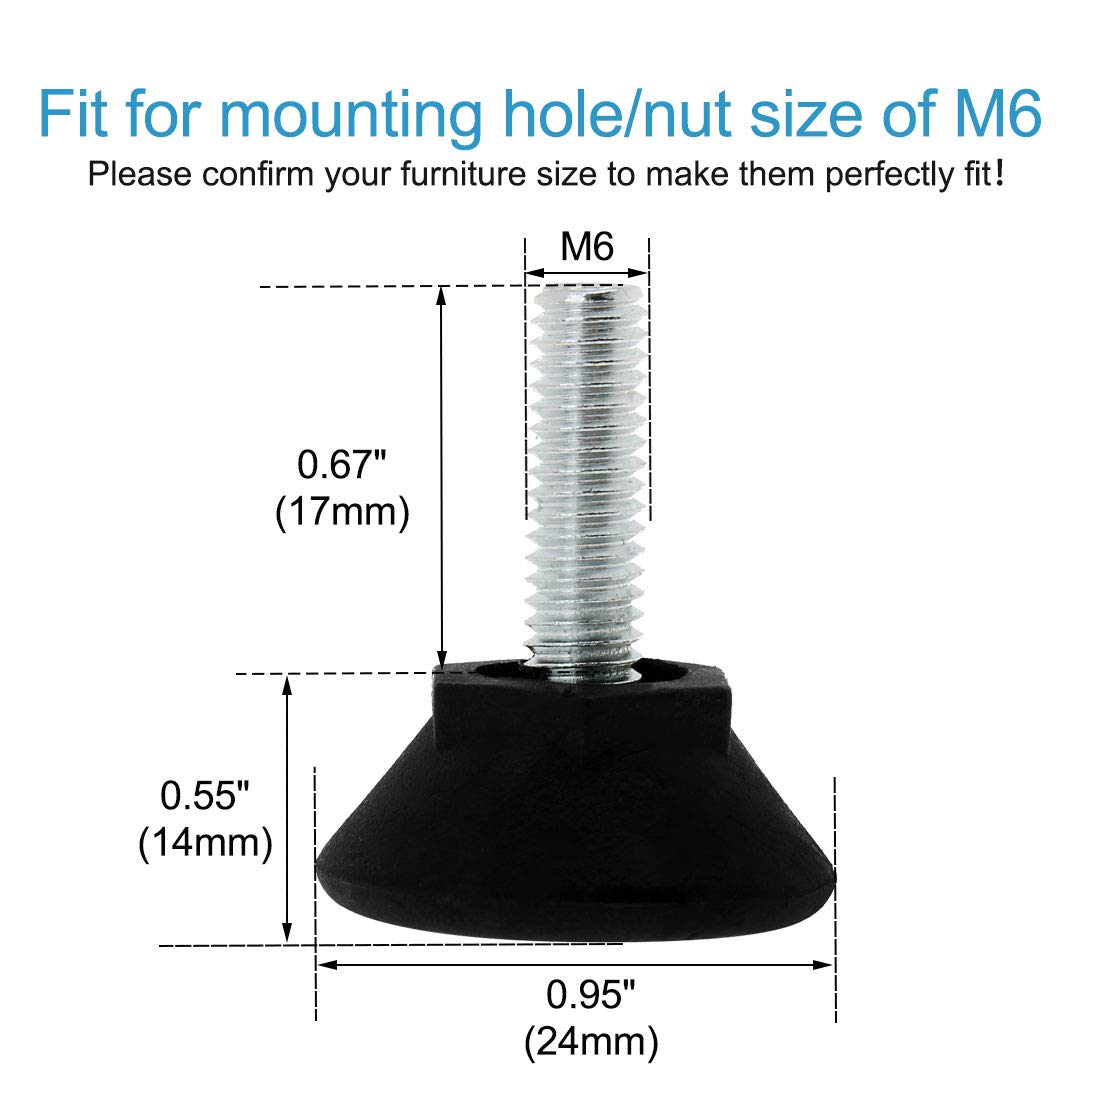 uxcell M6 x 17 x 24 Screw on Leveling Feet Adjustable Leveler Floor Protector for Machine Furniture Sofa Table Desk Leg 12 Pack